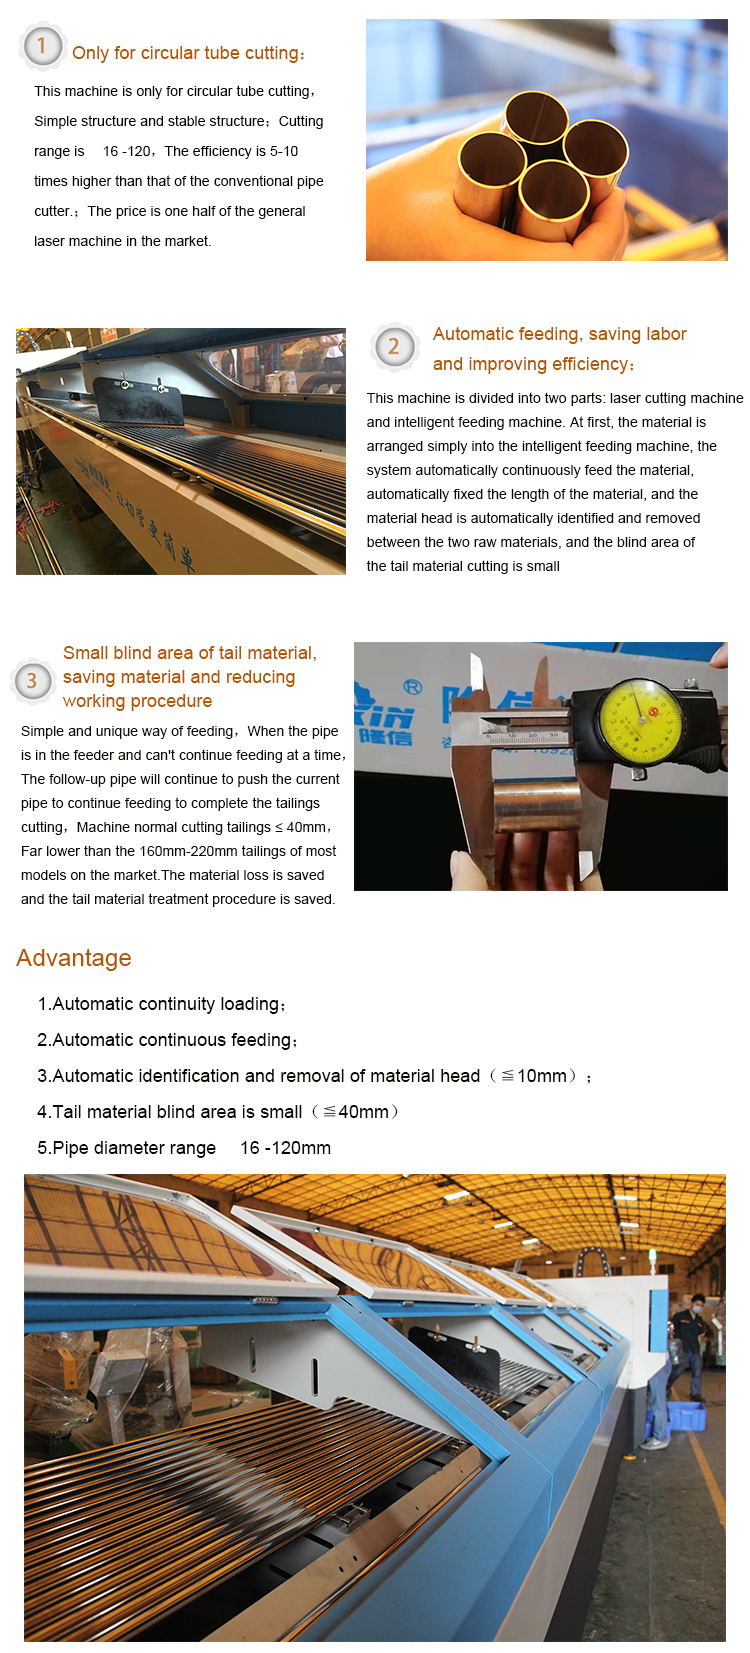 CNC automatic fiber laser cutting machine for metal iron stainless steel square round tube pipe